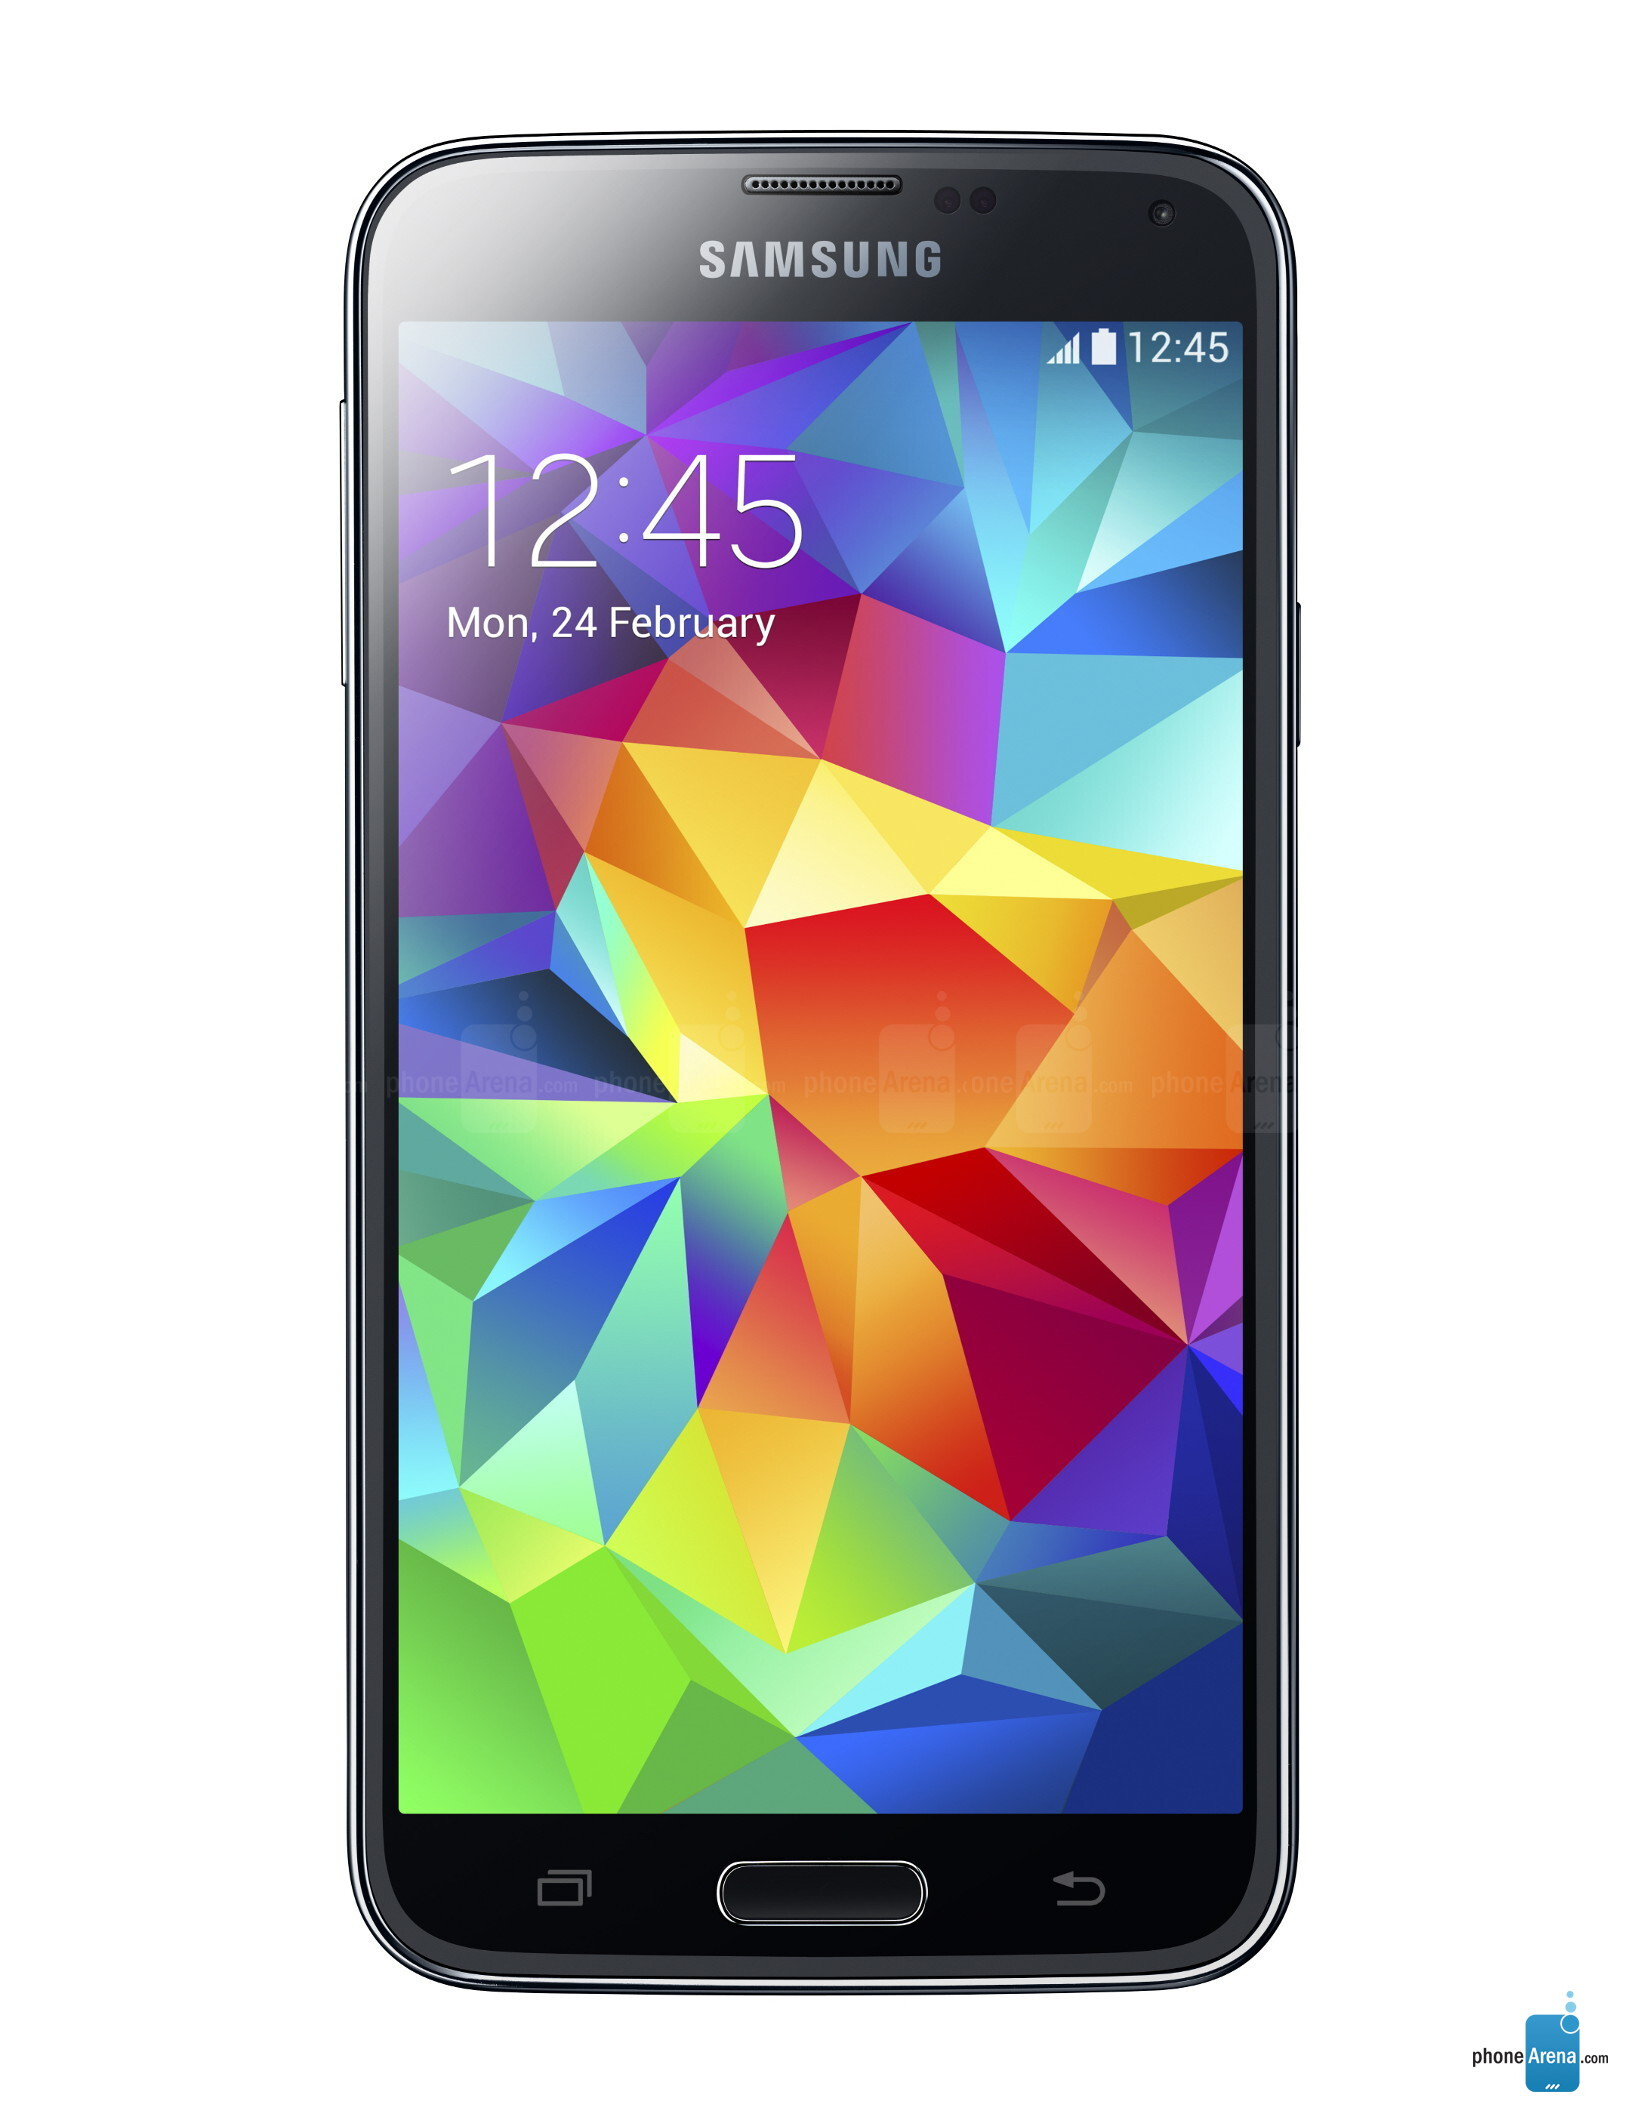 Samsung Galaxy S5, 69.76% screen-to-body ratio - image from The ...